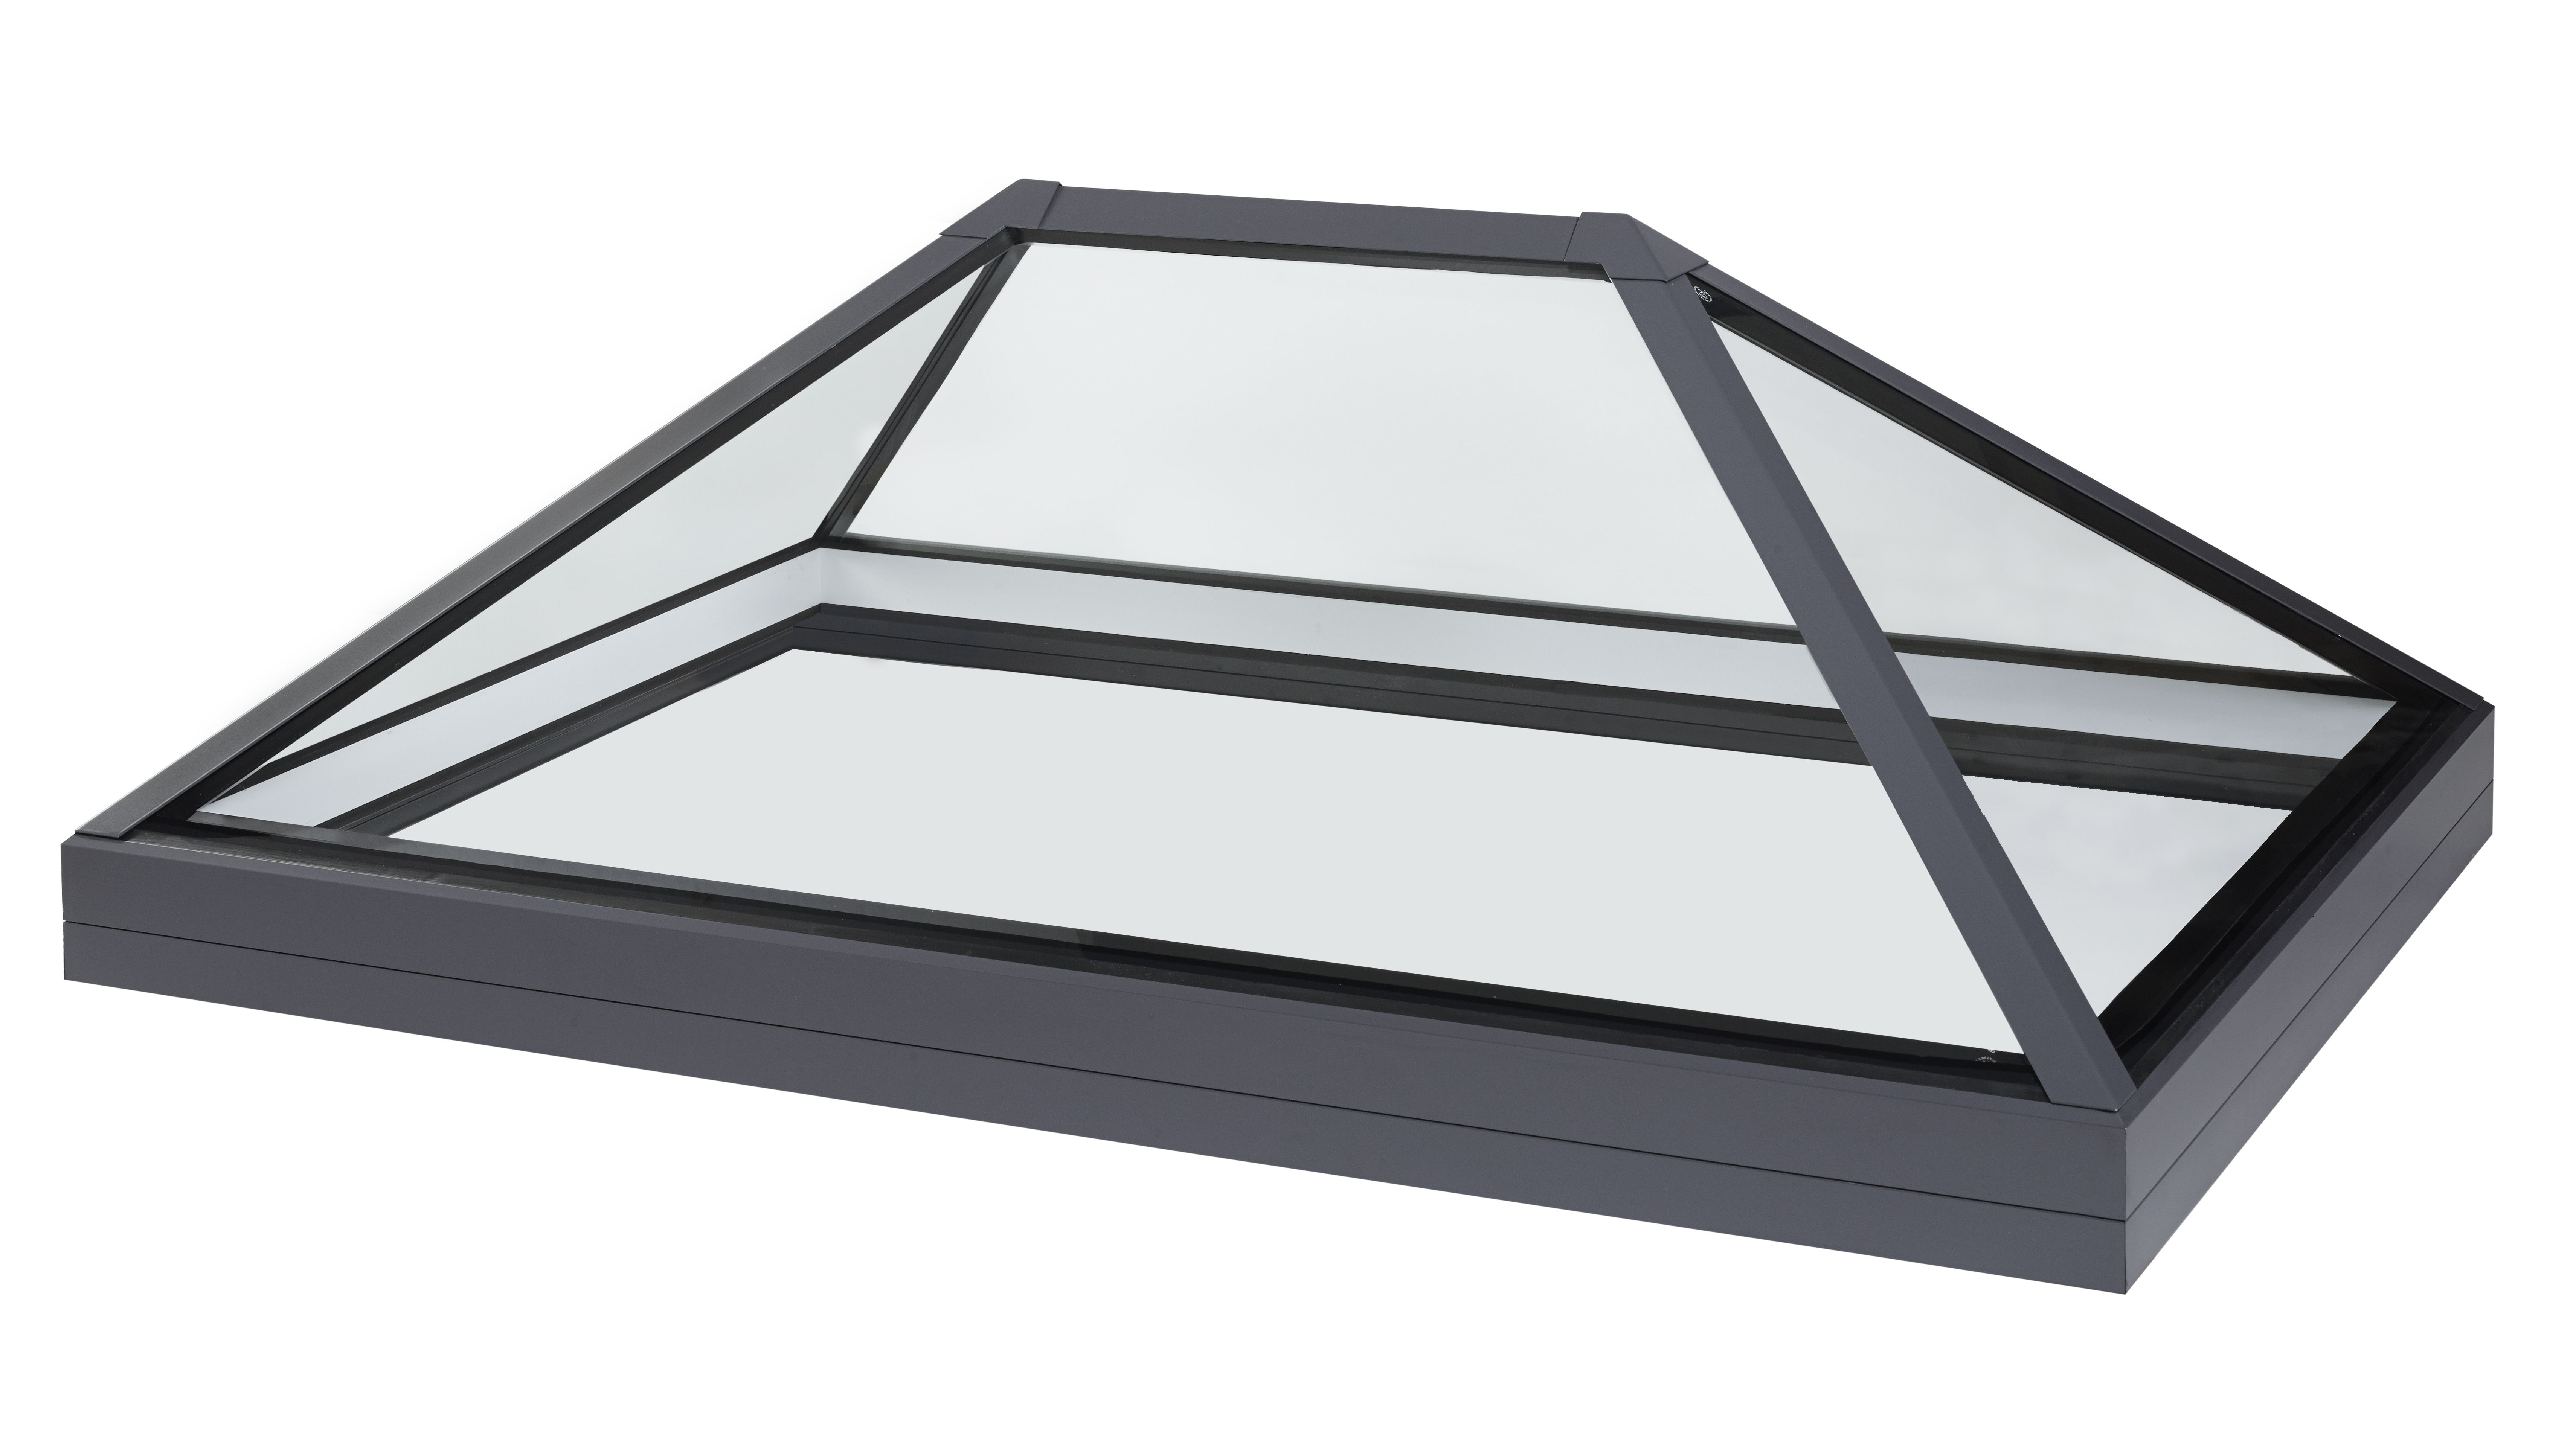 Structurally bonded roof lantern rooflight and skylights for Glass roof design